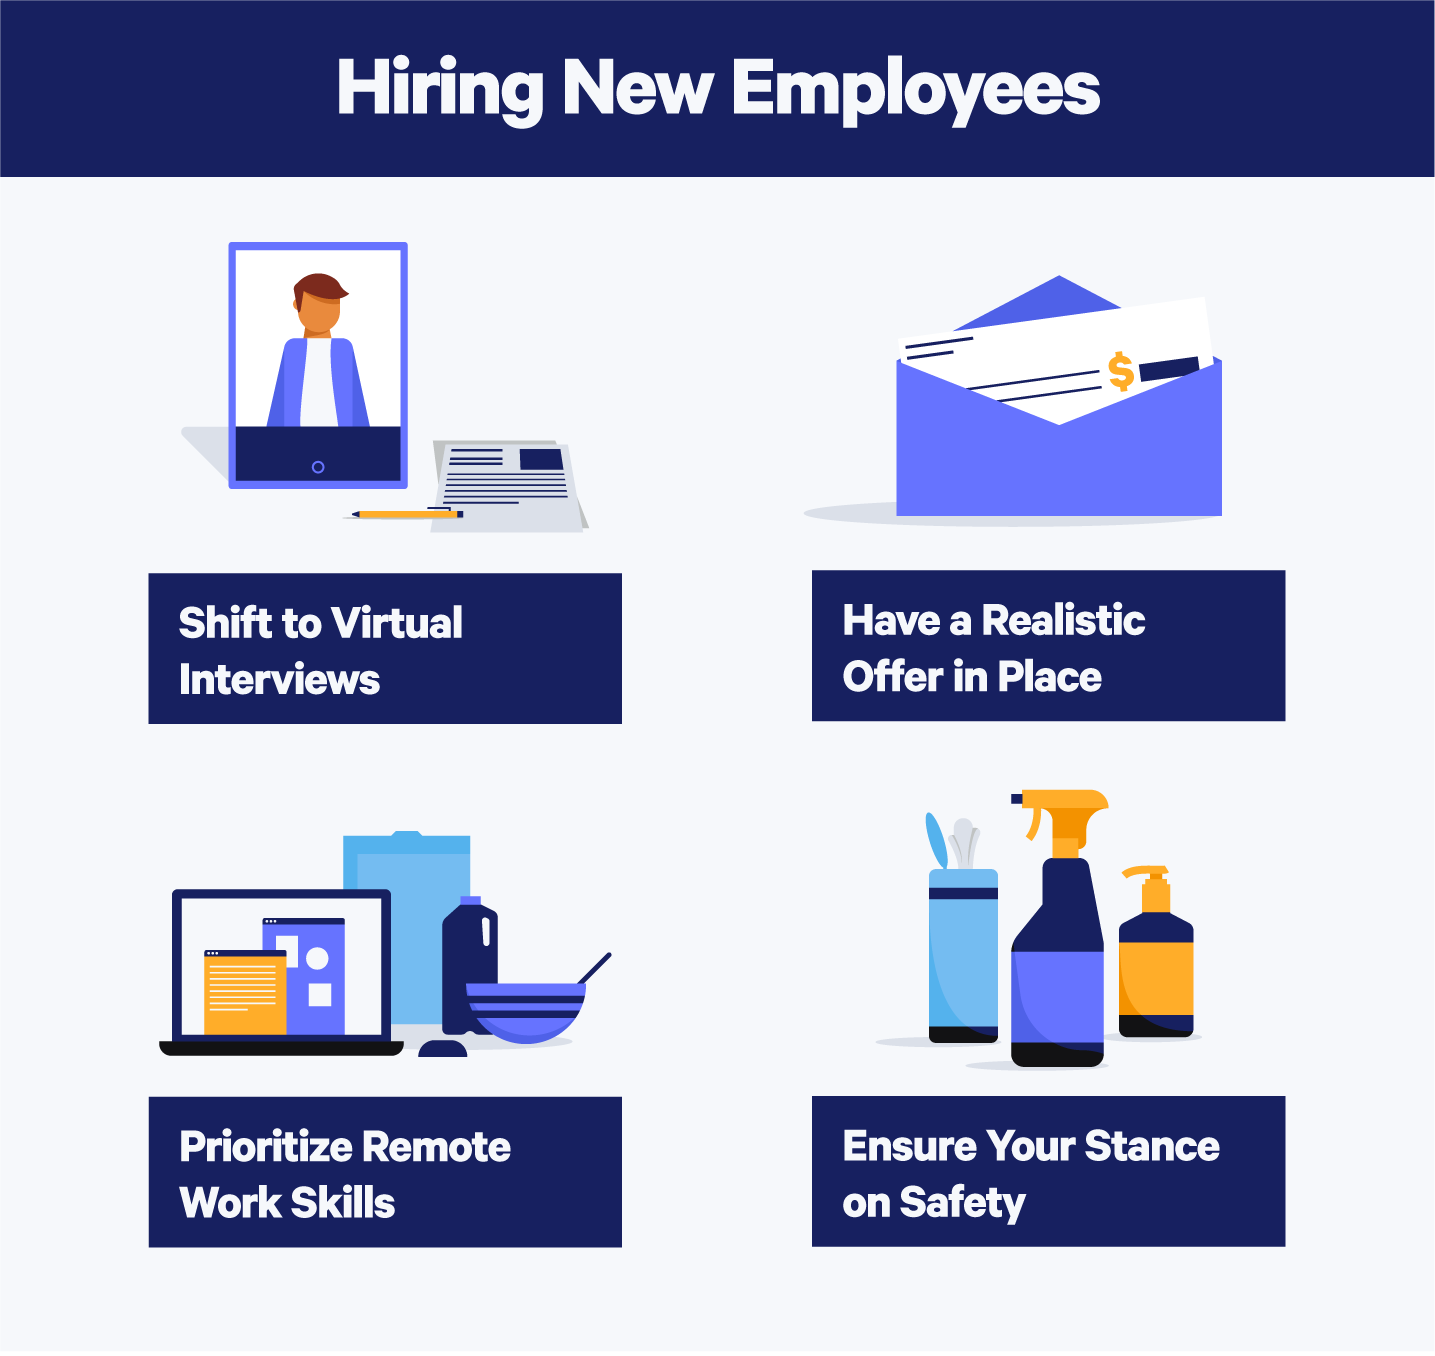 Hiring new employees during covid 19